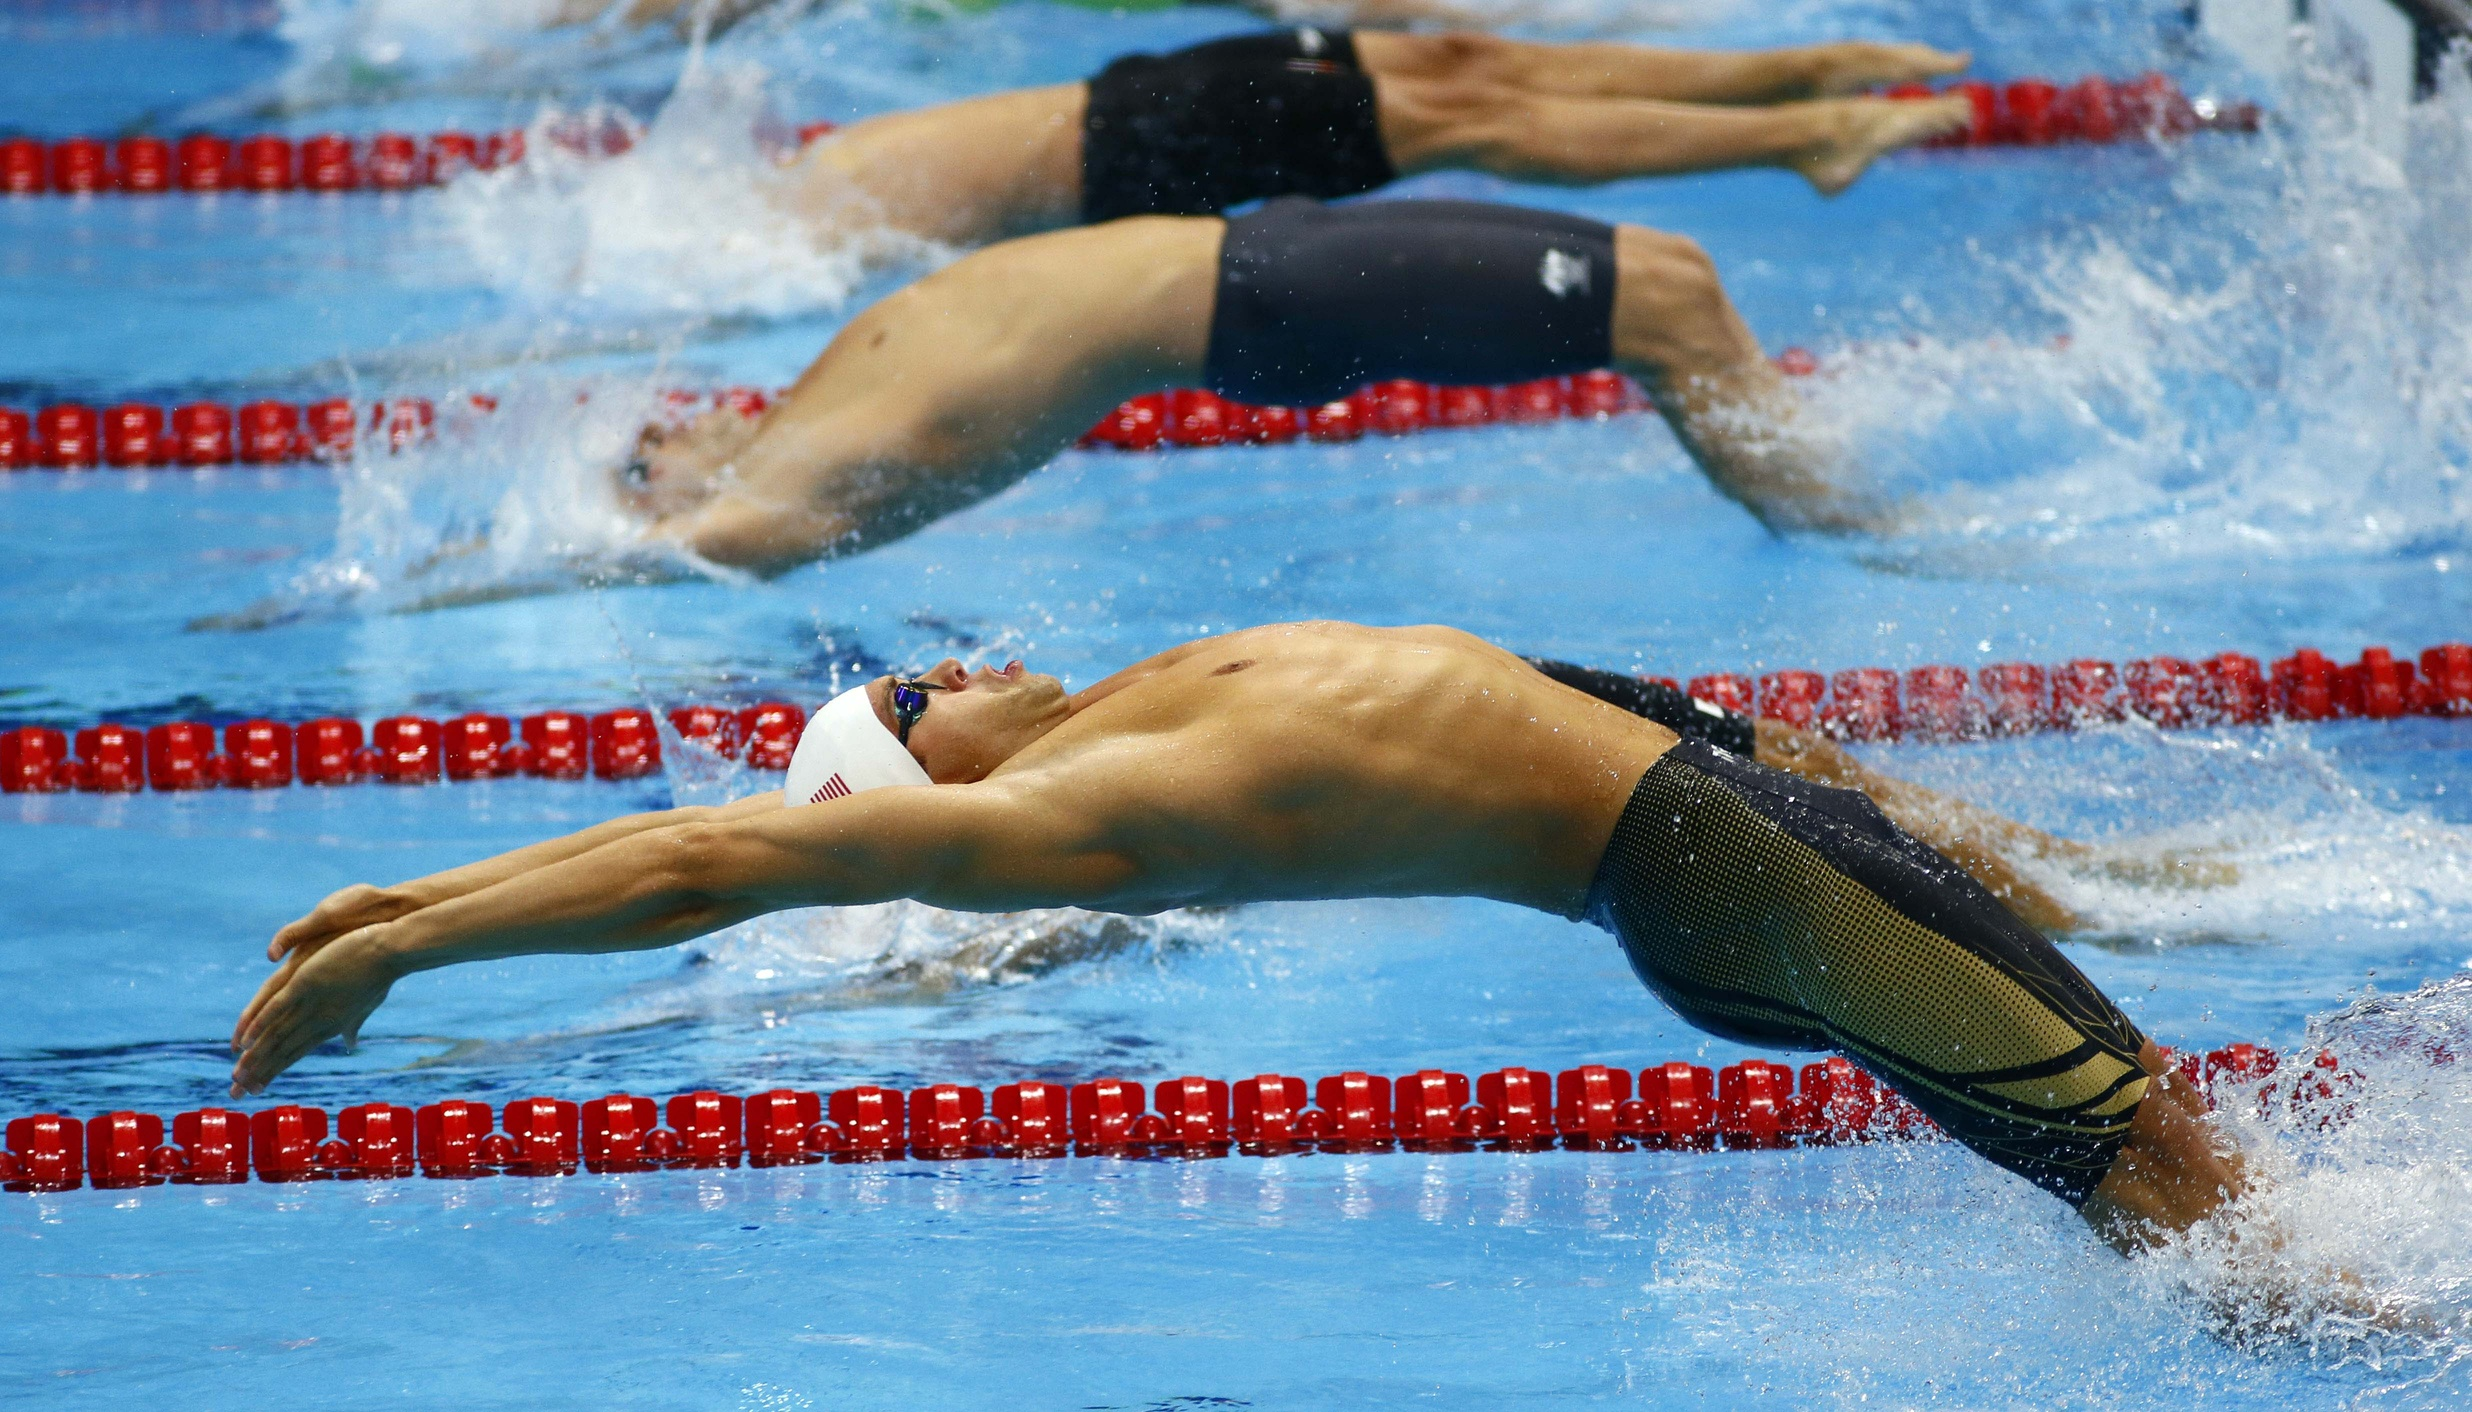 Olympic swimming backstroke